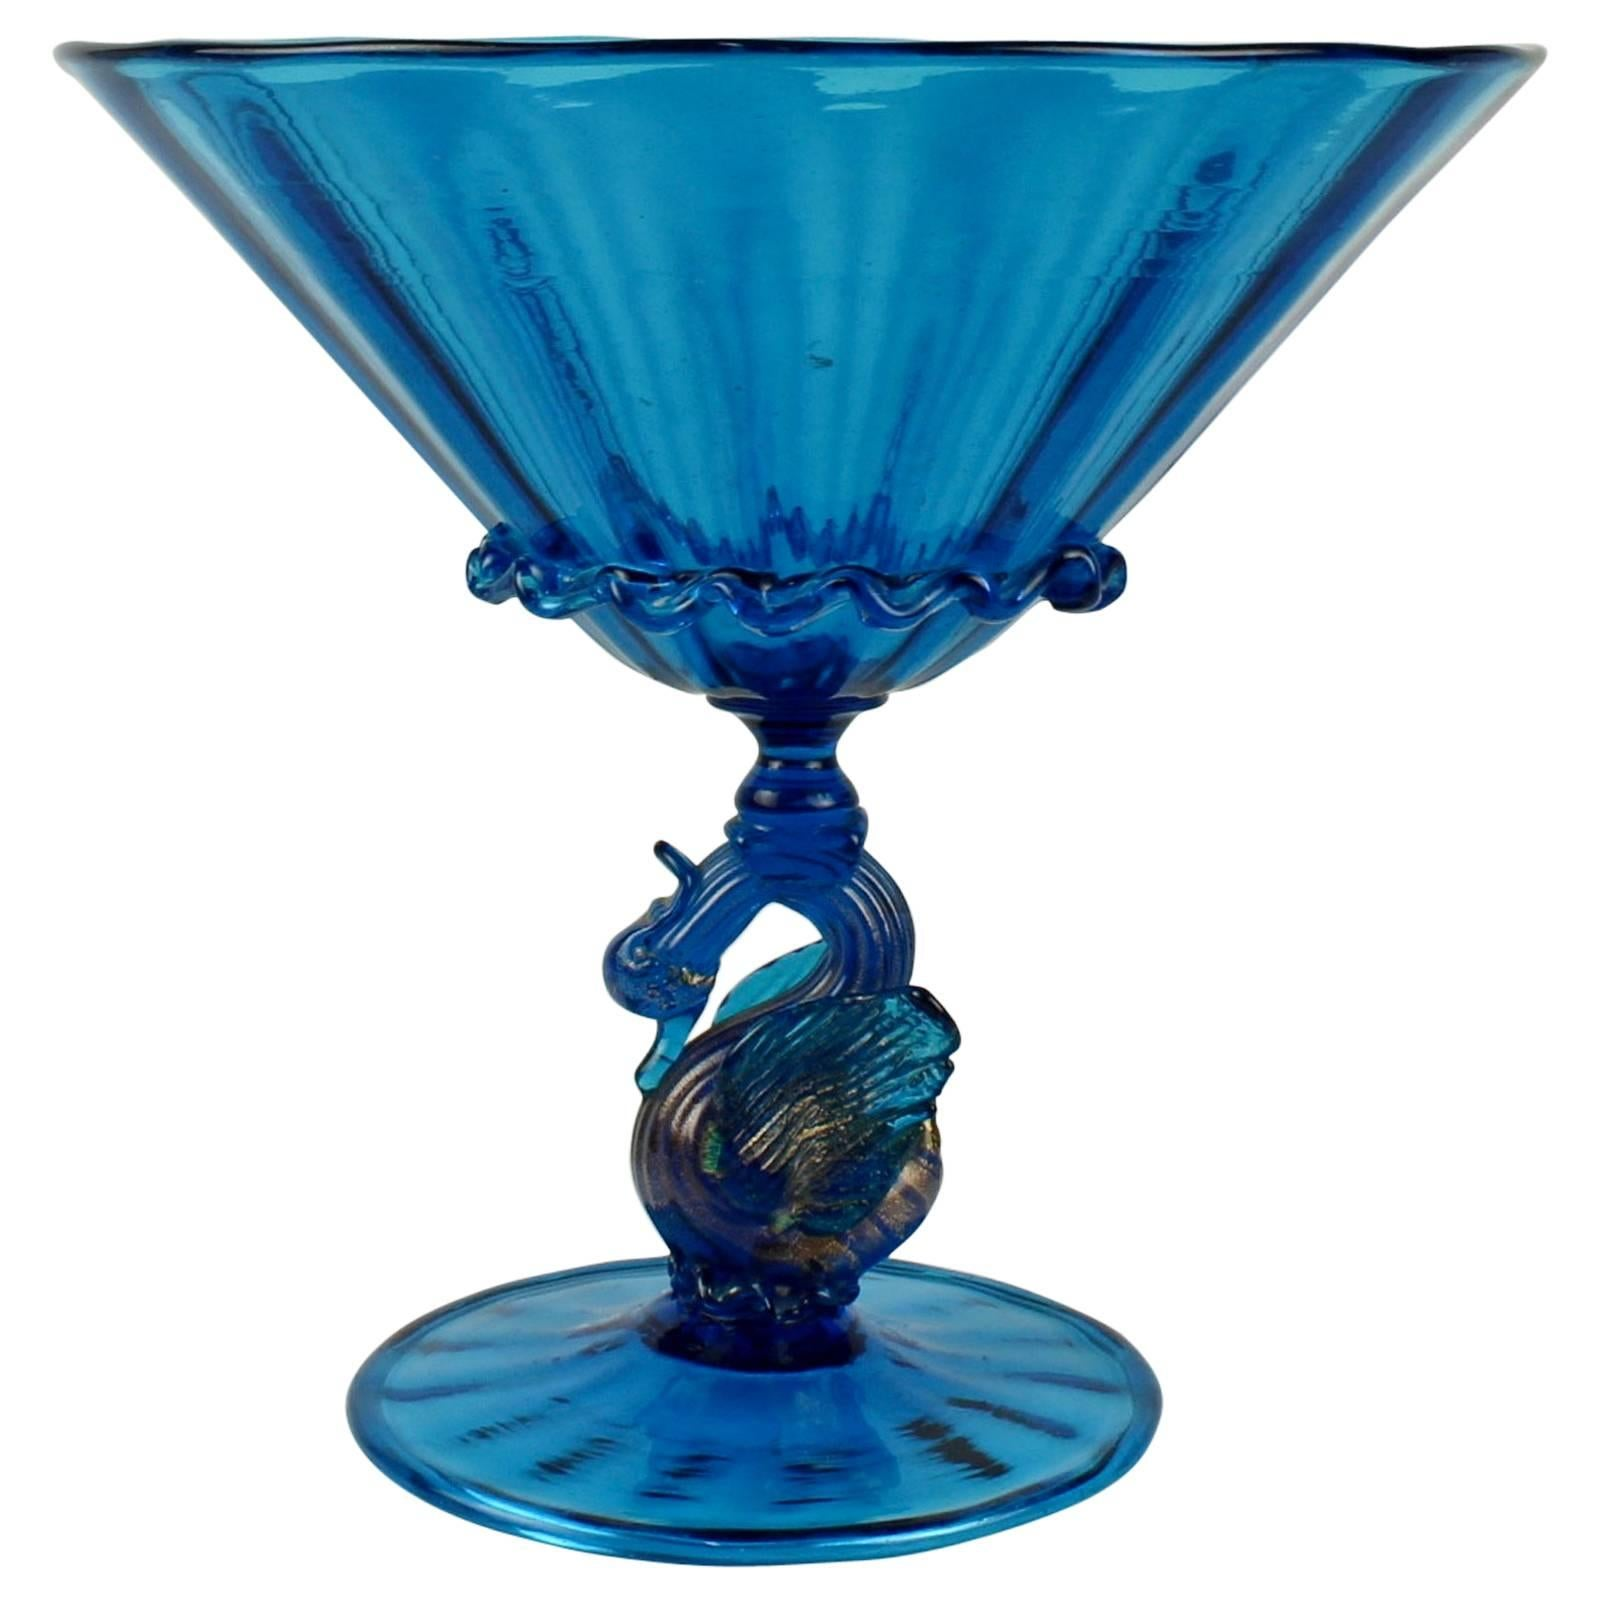 Large Salviati Blue Venetian Glass Footed Bowl or Fruit Stand with Swan Support